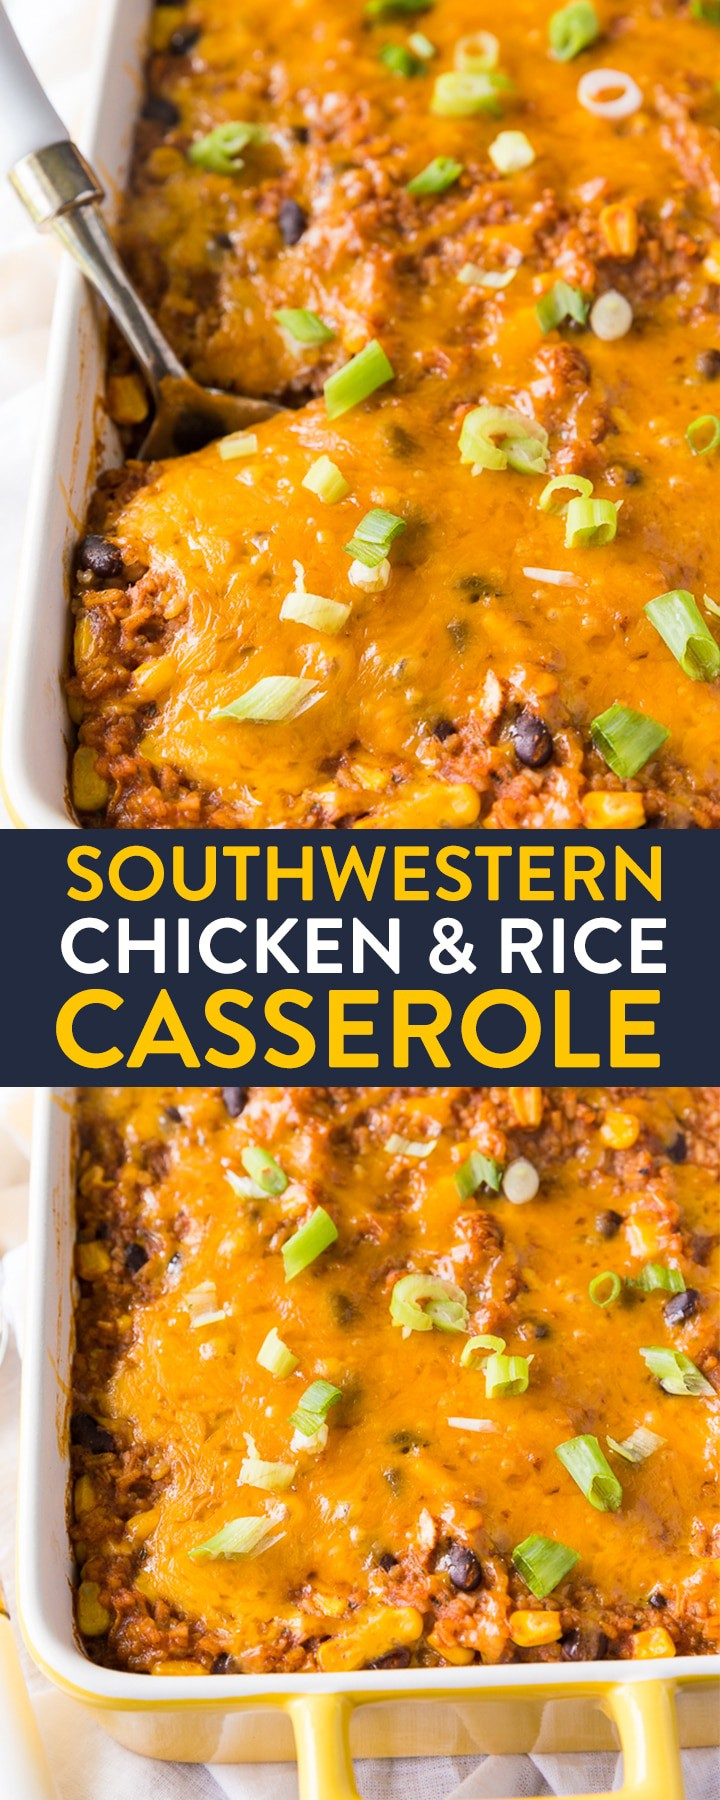 Southwestern Chicken and Rice Casserole. This cheesy bake has rice, black beans and chicken. It's easy to make as a vegetarian recipe too! An easy dinner that makes delicious leftovers.